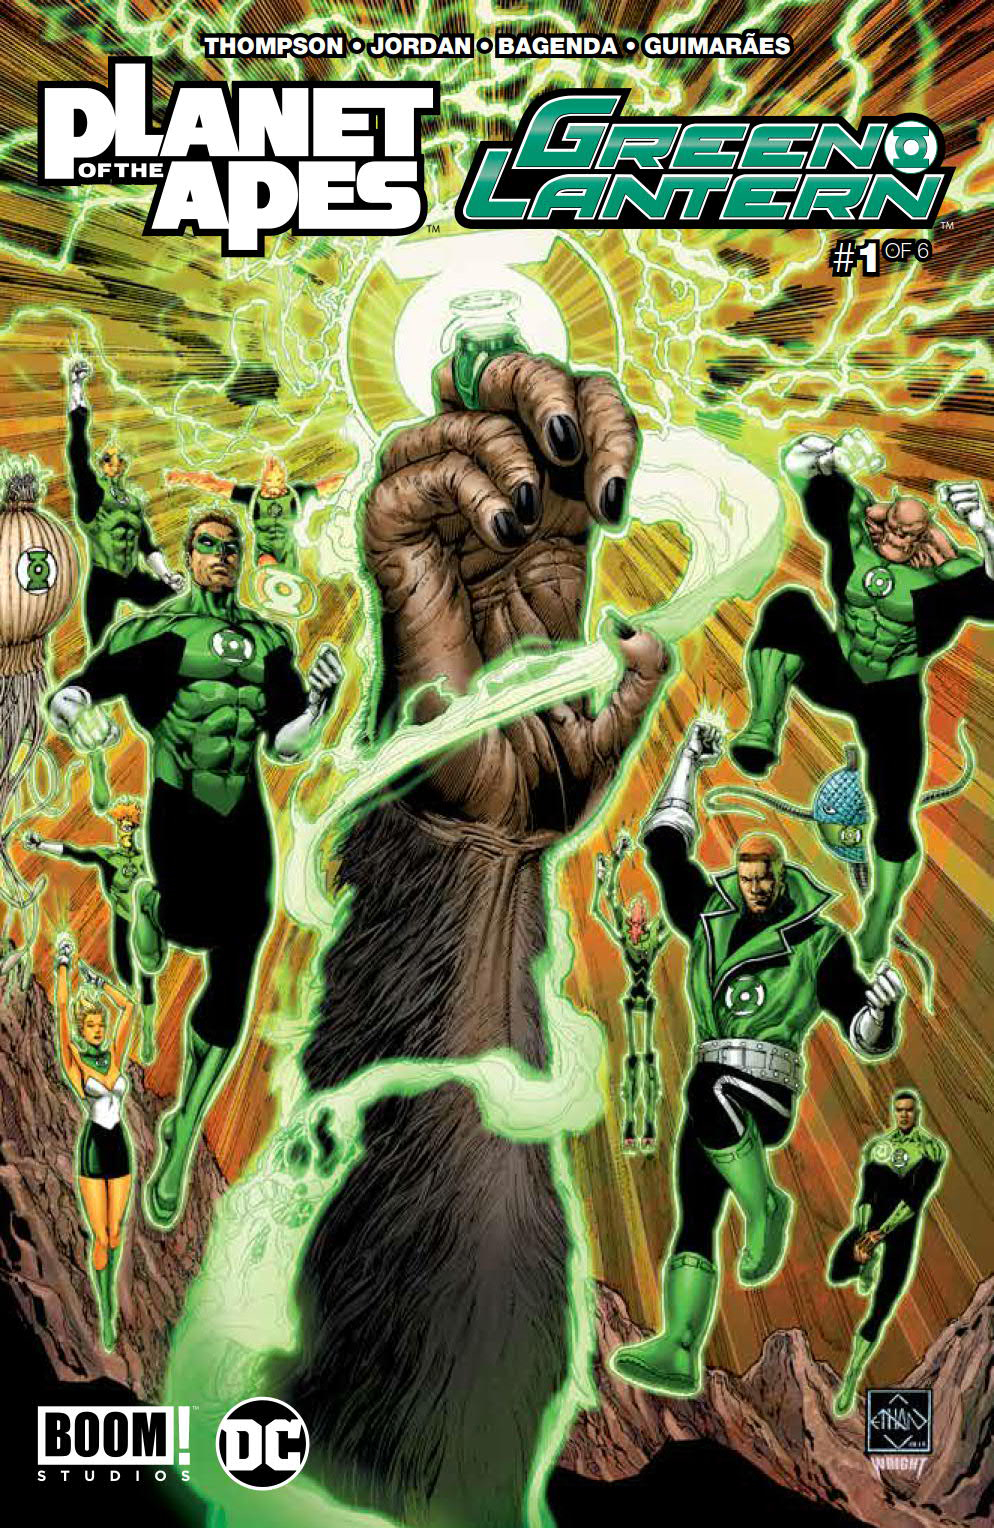 PLANET OF APES GREEN LANTERN #1 MAIN CVR